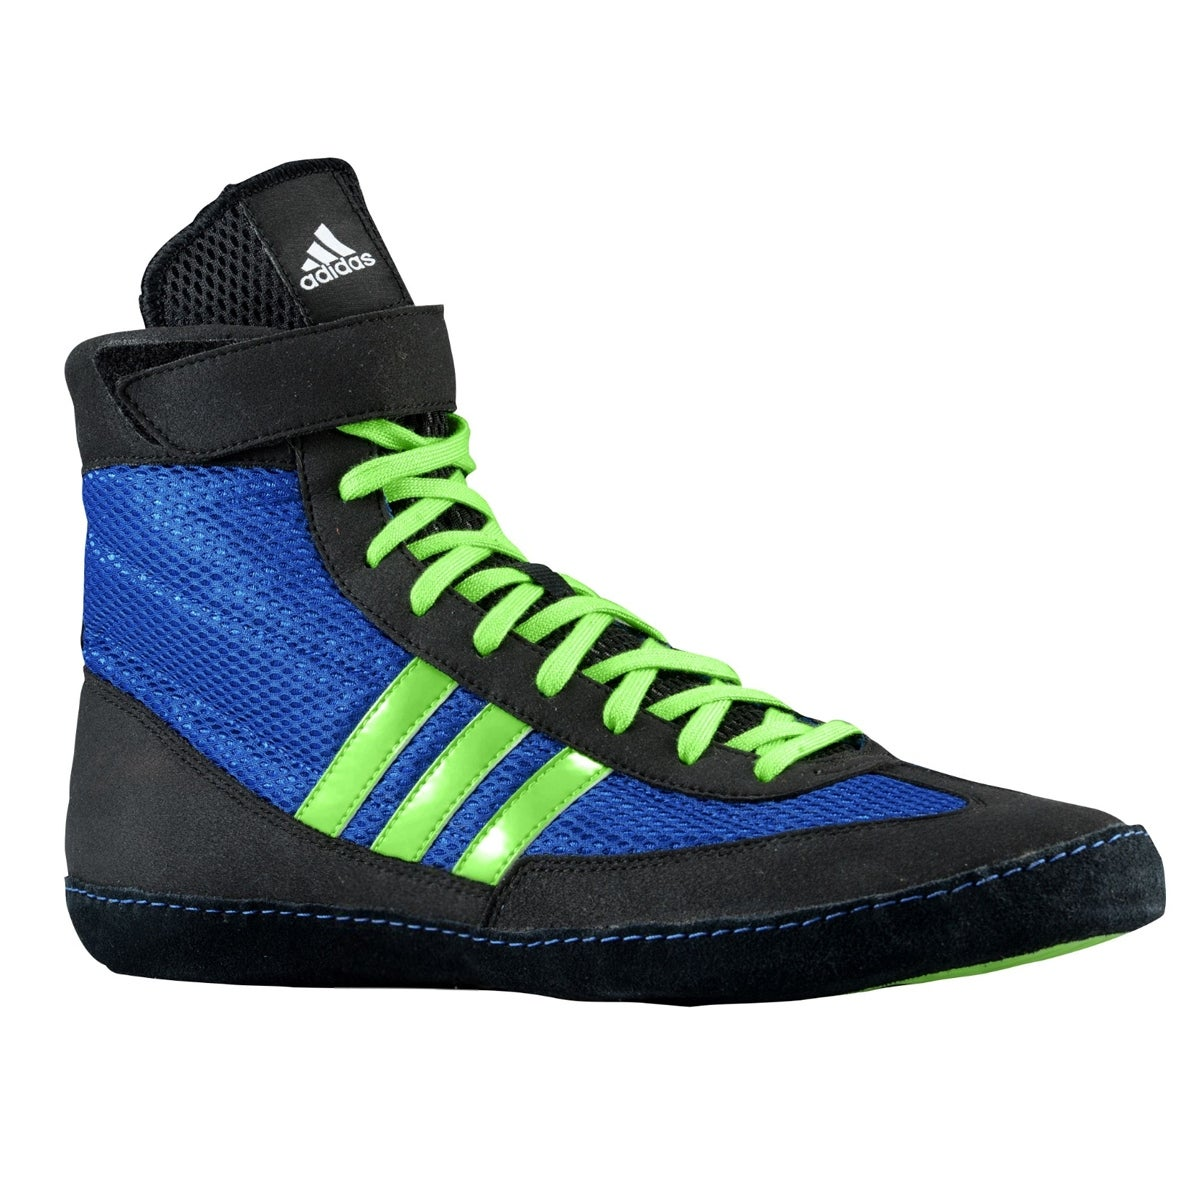 Shop Adidas Combat Speed 4 Wrestling Shoes - Royal Green Black - Free  Shipping Today - Overstock - 16067753 1015dbcd5